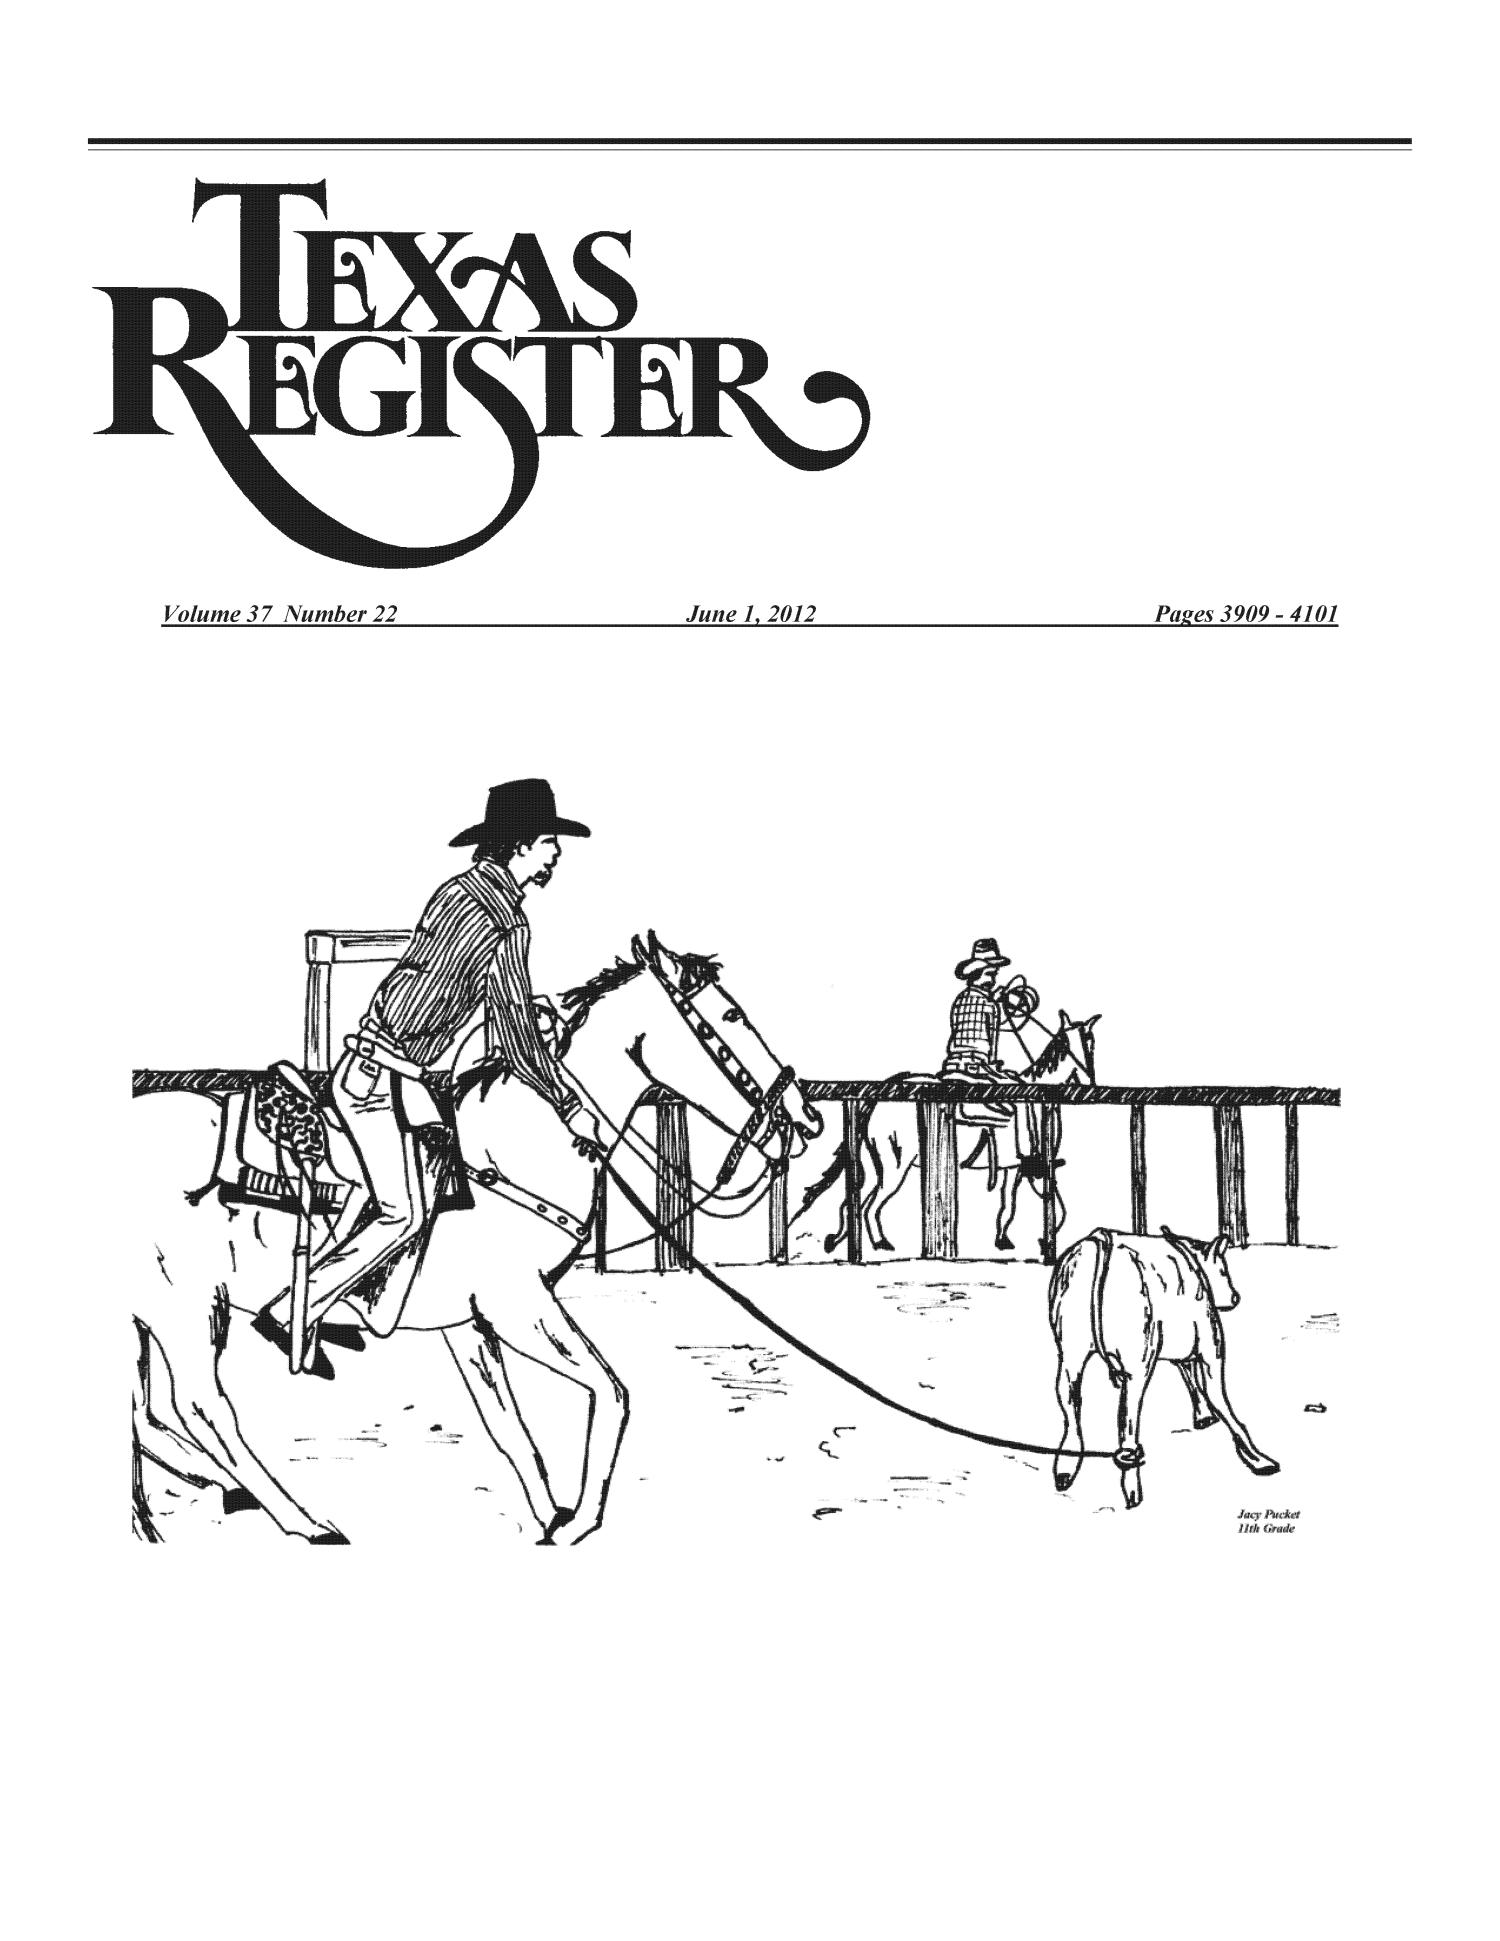 Texas Register, Volume 37, Number 22, Pages 3909-4101